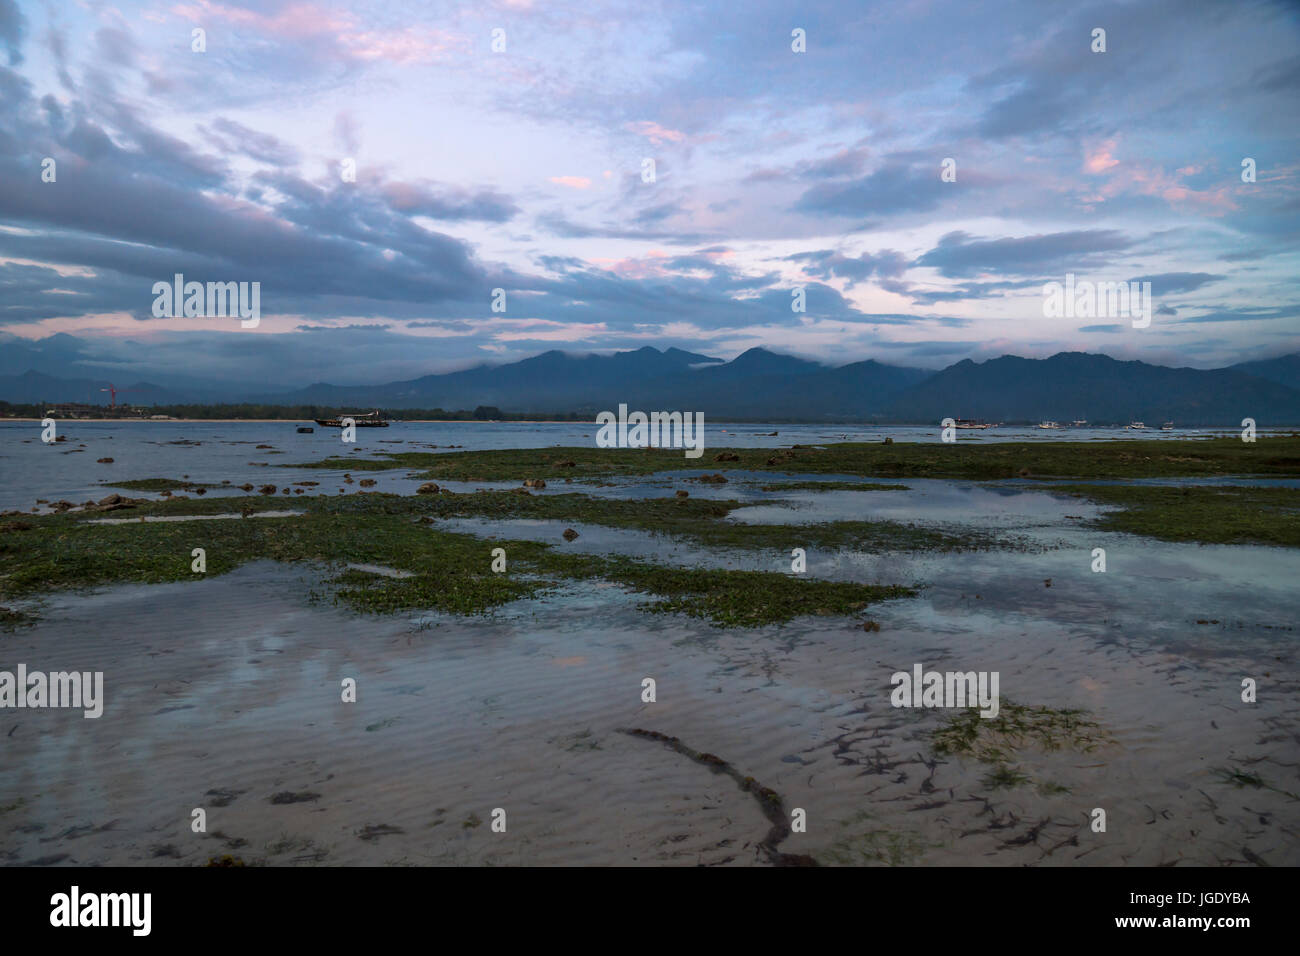 VIew to Lombok mountains from the beach of Gili Air during sunset with purple cloudscape, Indonesia - Stock Image